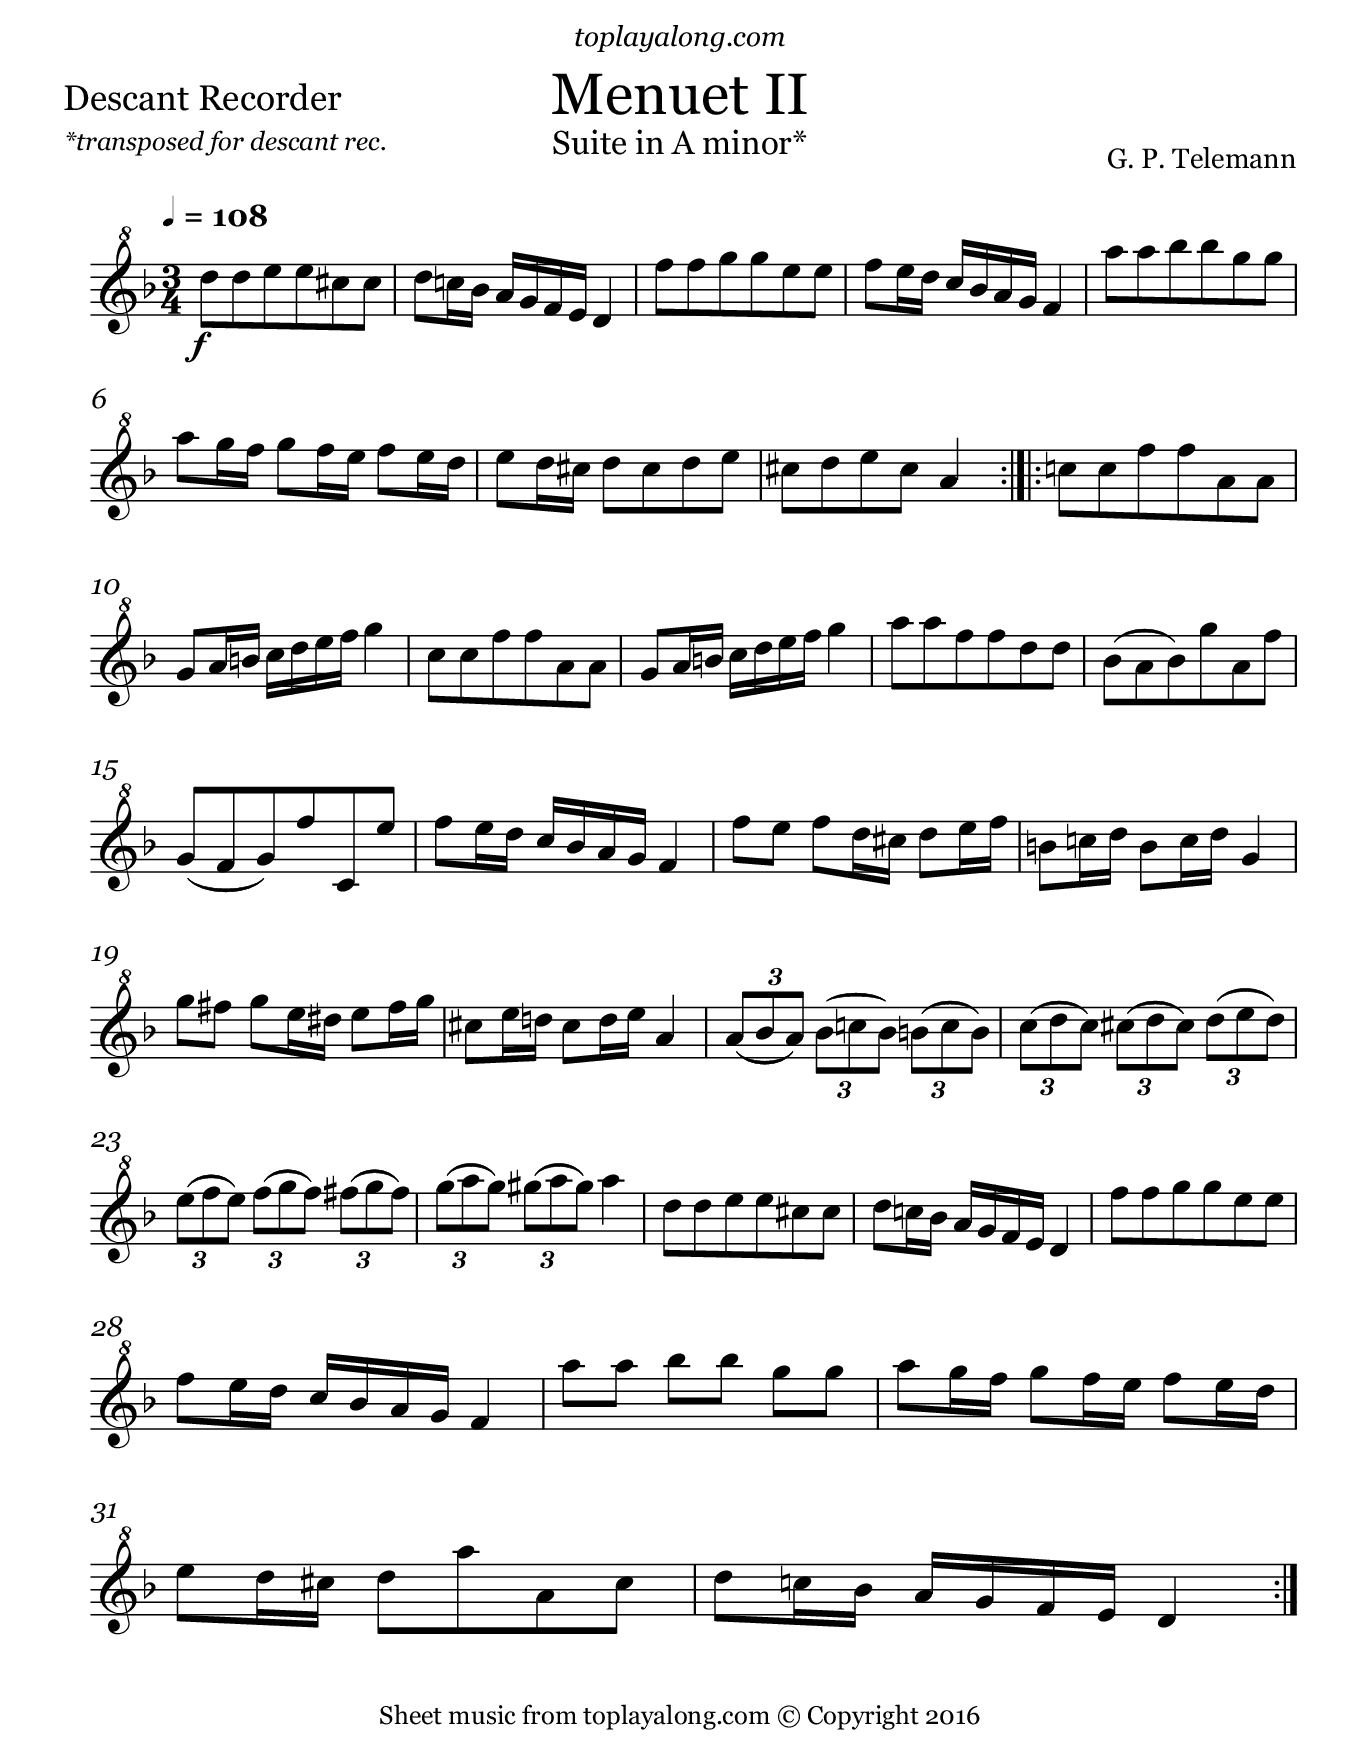 Minuet II from Suite in A minor by Telemann. Sheet music for Recorder, page 1.